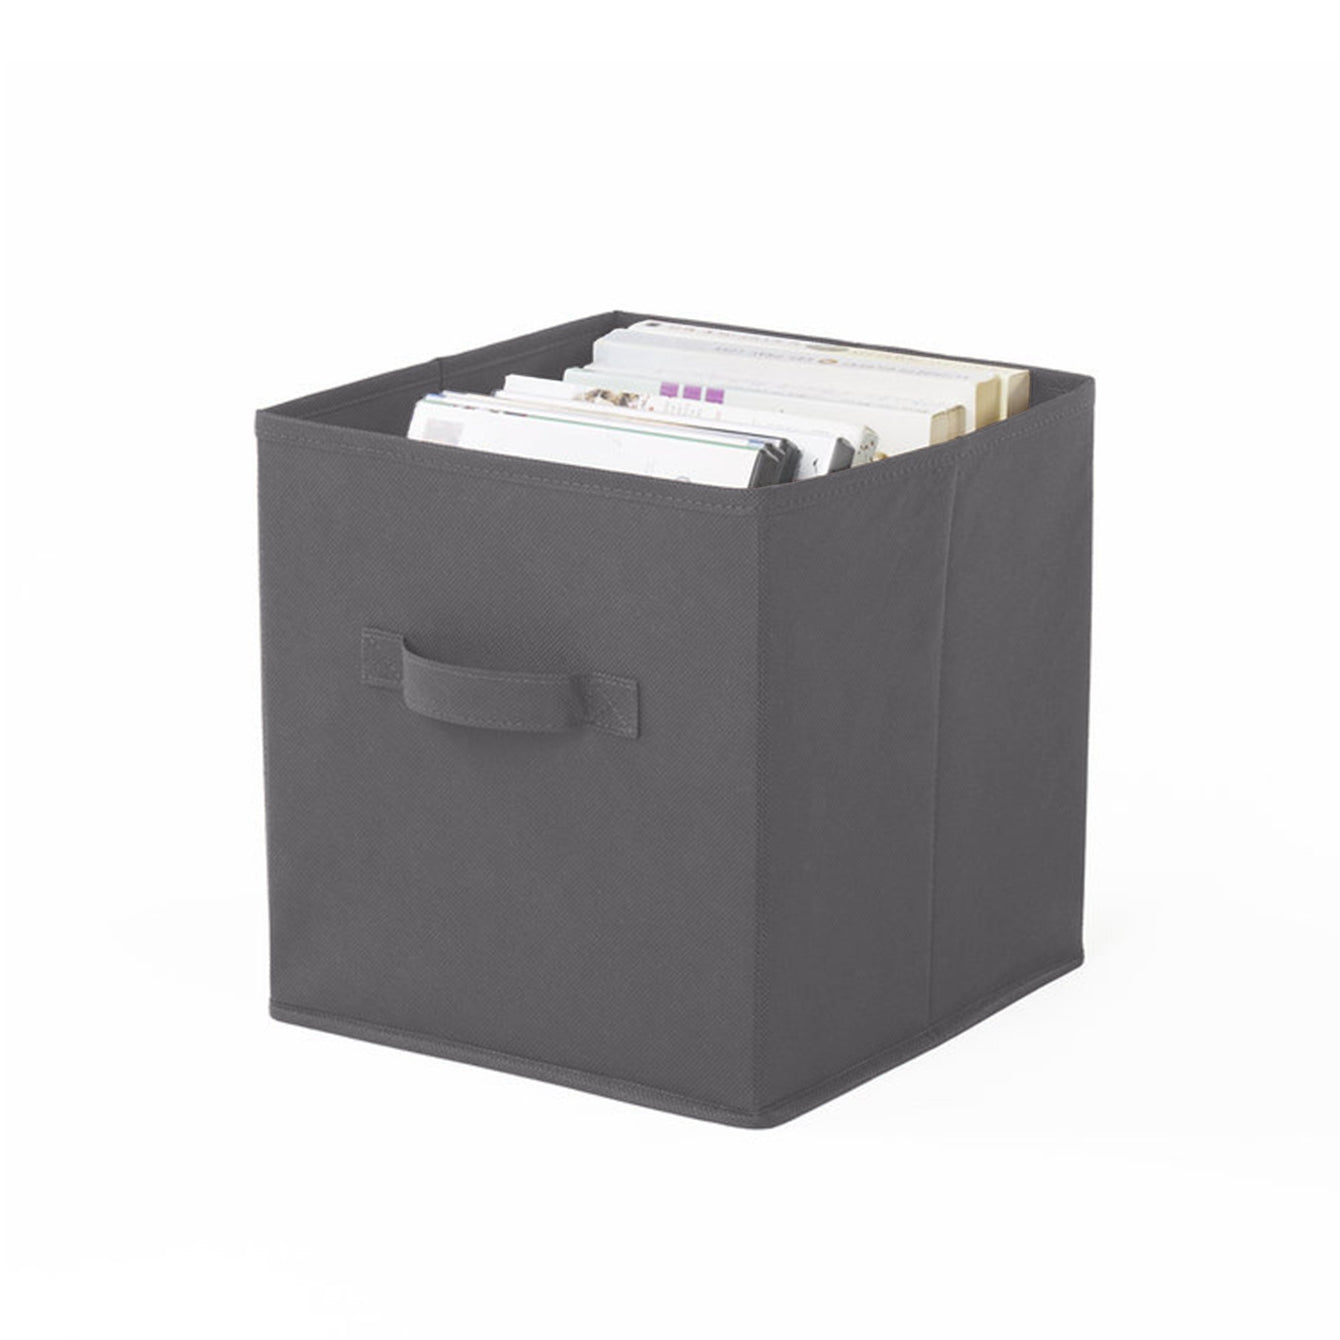 Fabric Storage Cube with Handles - Style 8201